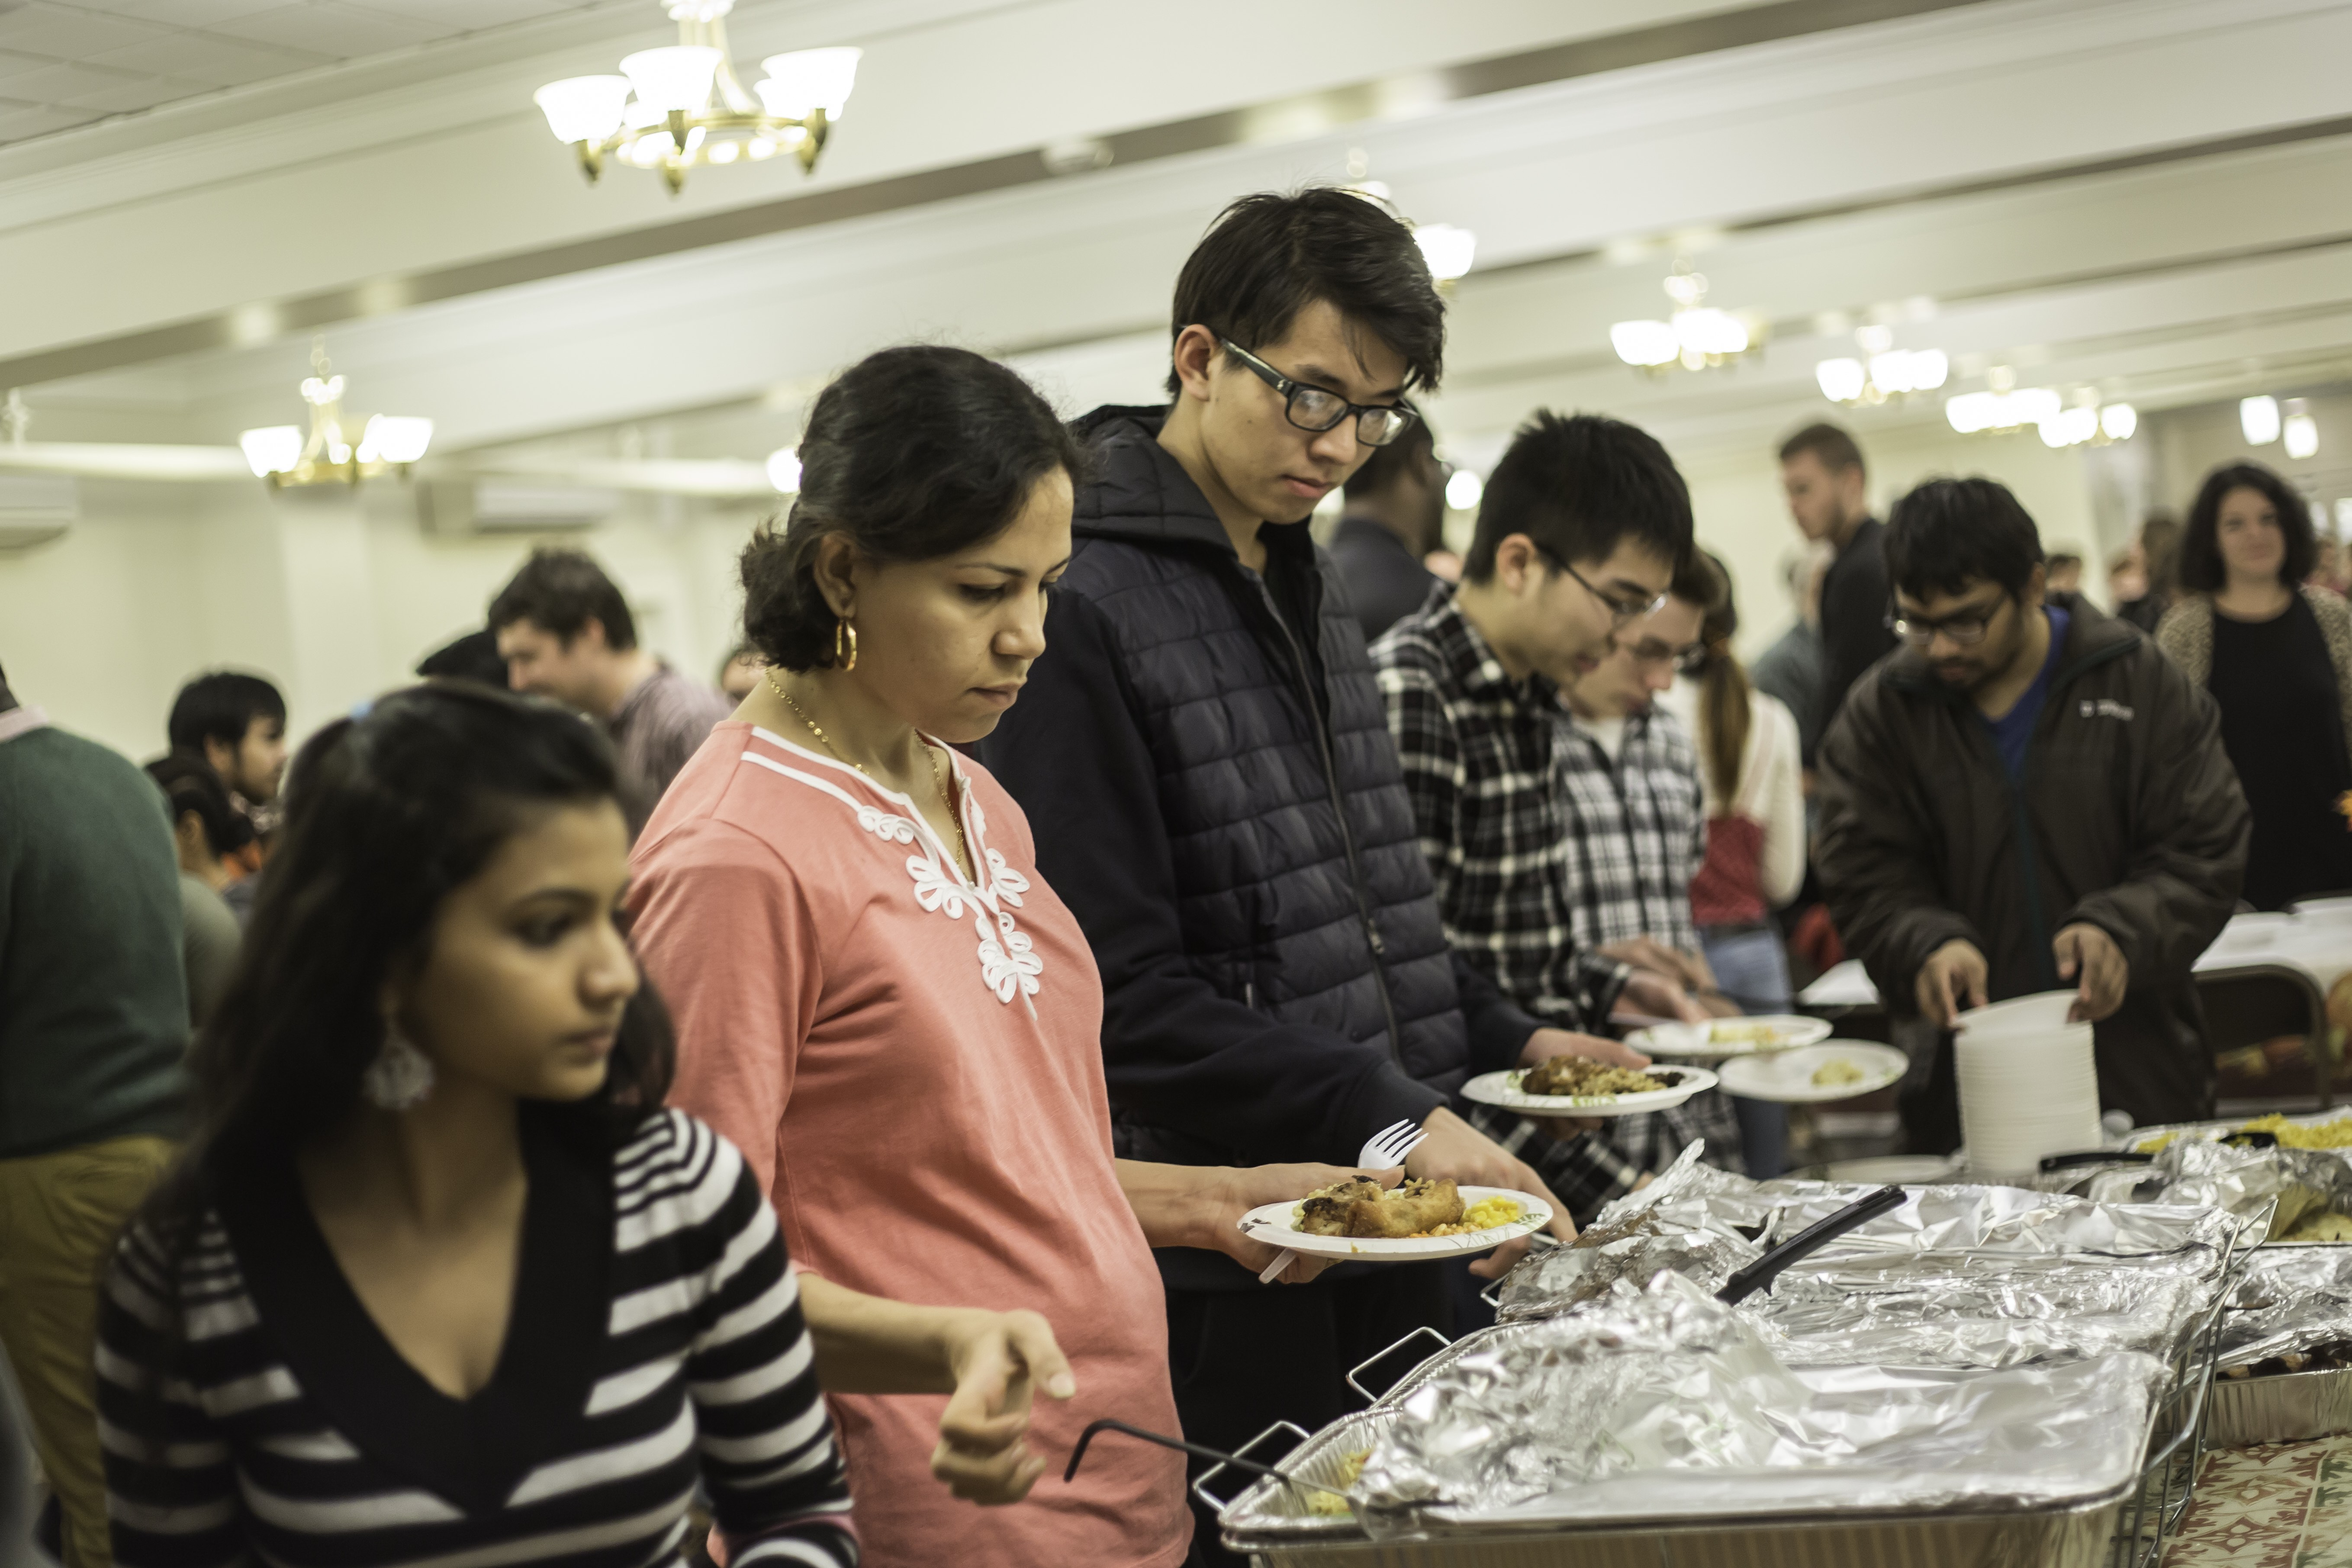 The Multicultural Thanksgiving was hosted by the Office Of Multicultural Student Life and Student Heritage Alliance Council on Thursday, Nov. 17 in Estabrooke Hall. STAFF Sze Wing Wong